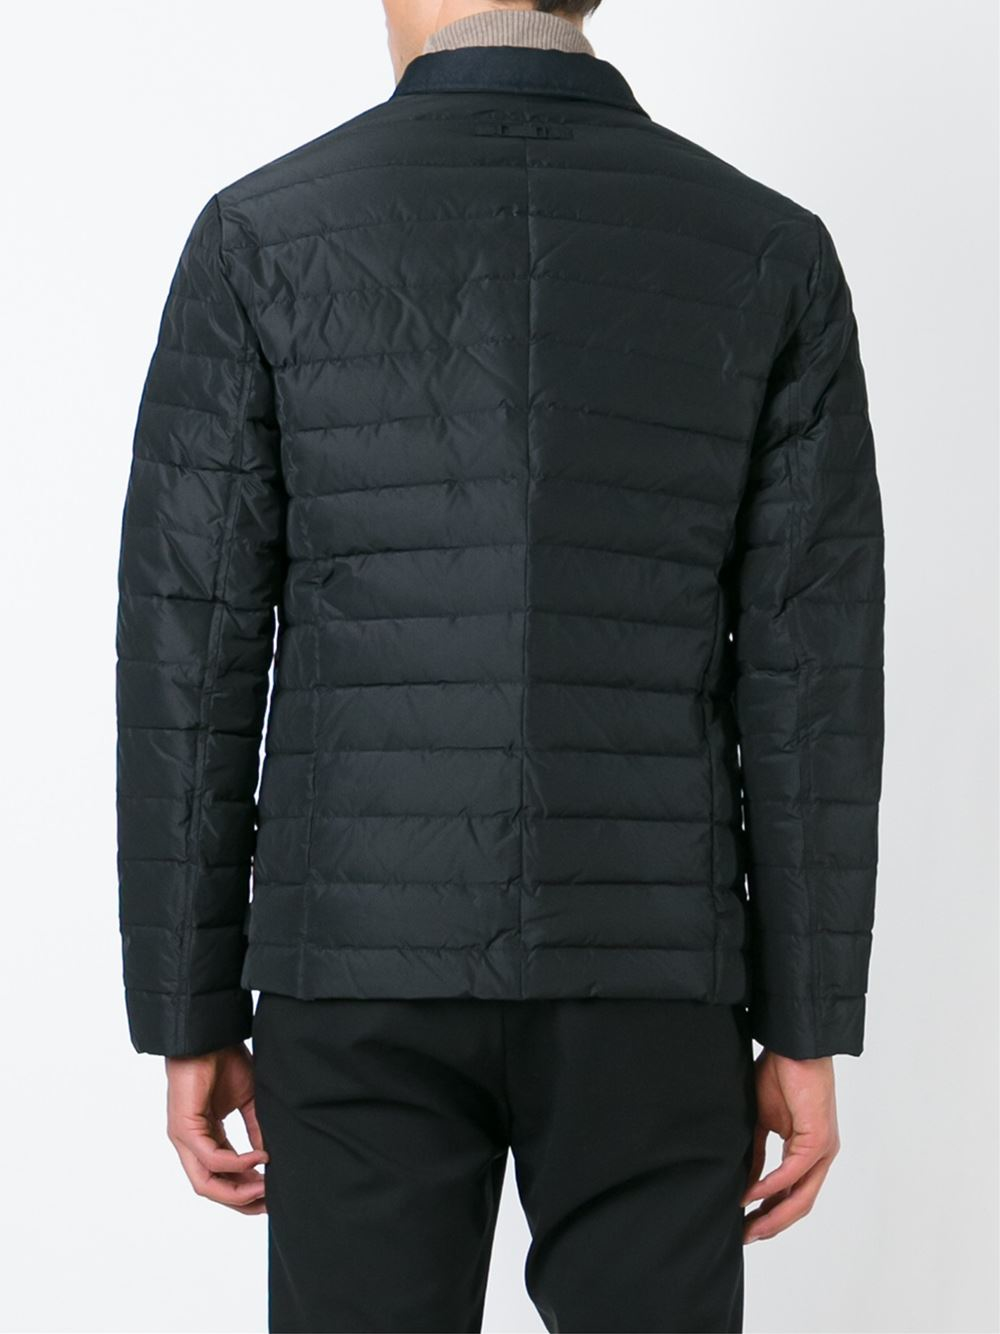 Armani Zipped Padded Jacket In Black For Men Lyst